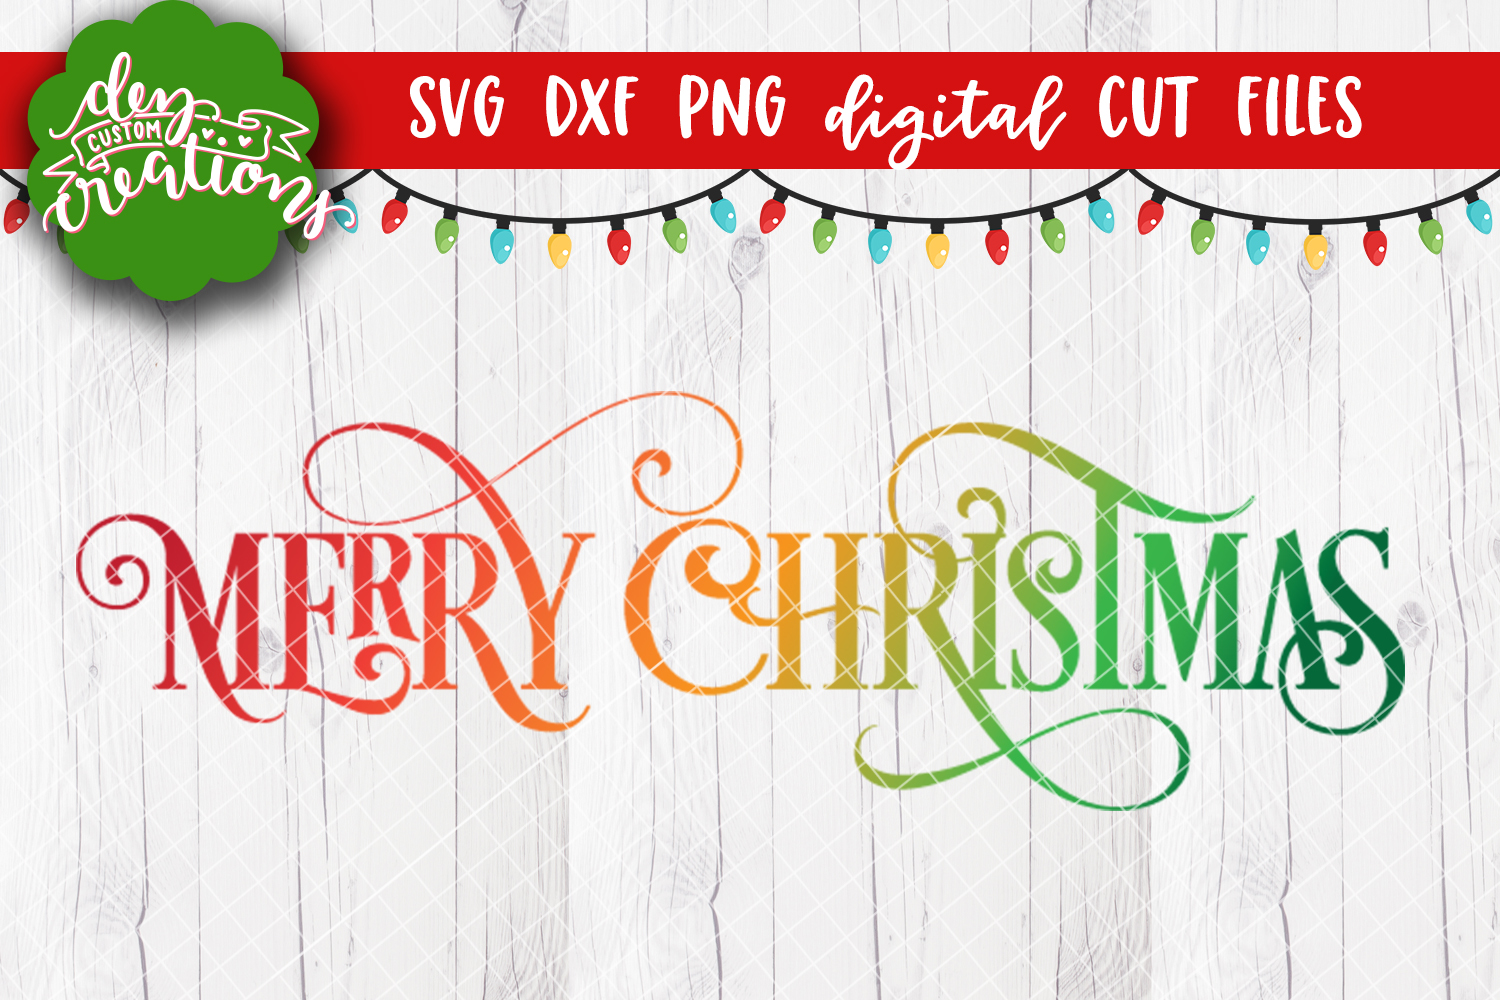 Merry Christmas - SVG DXF PNG Digital Cut File example image 2